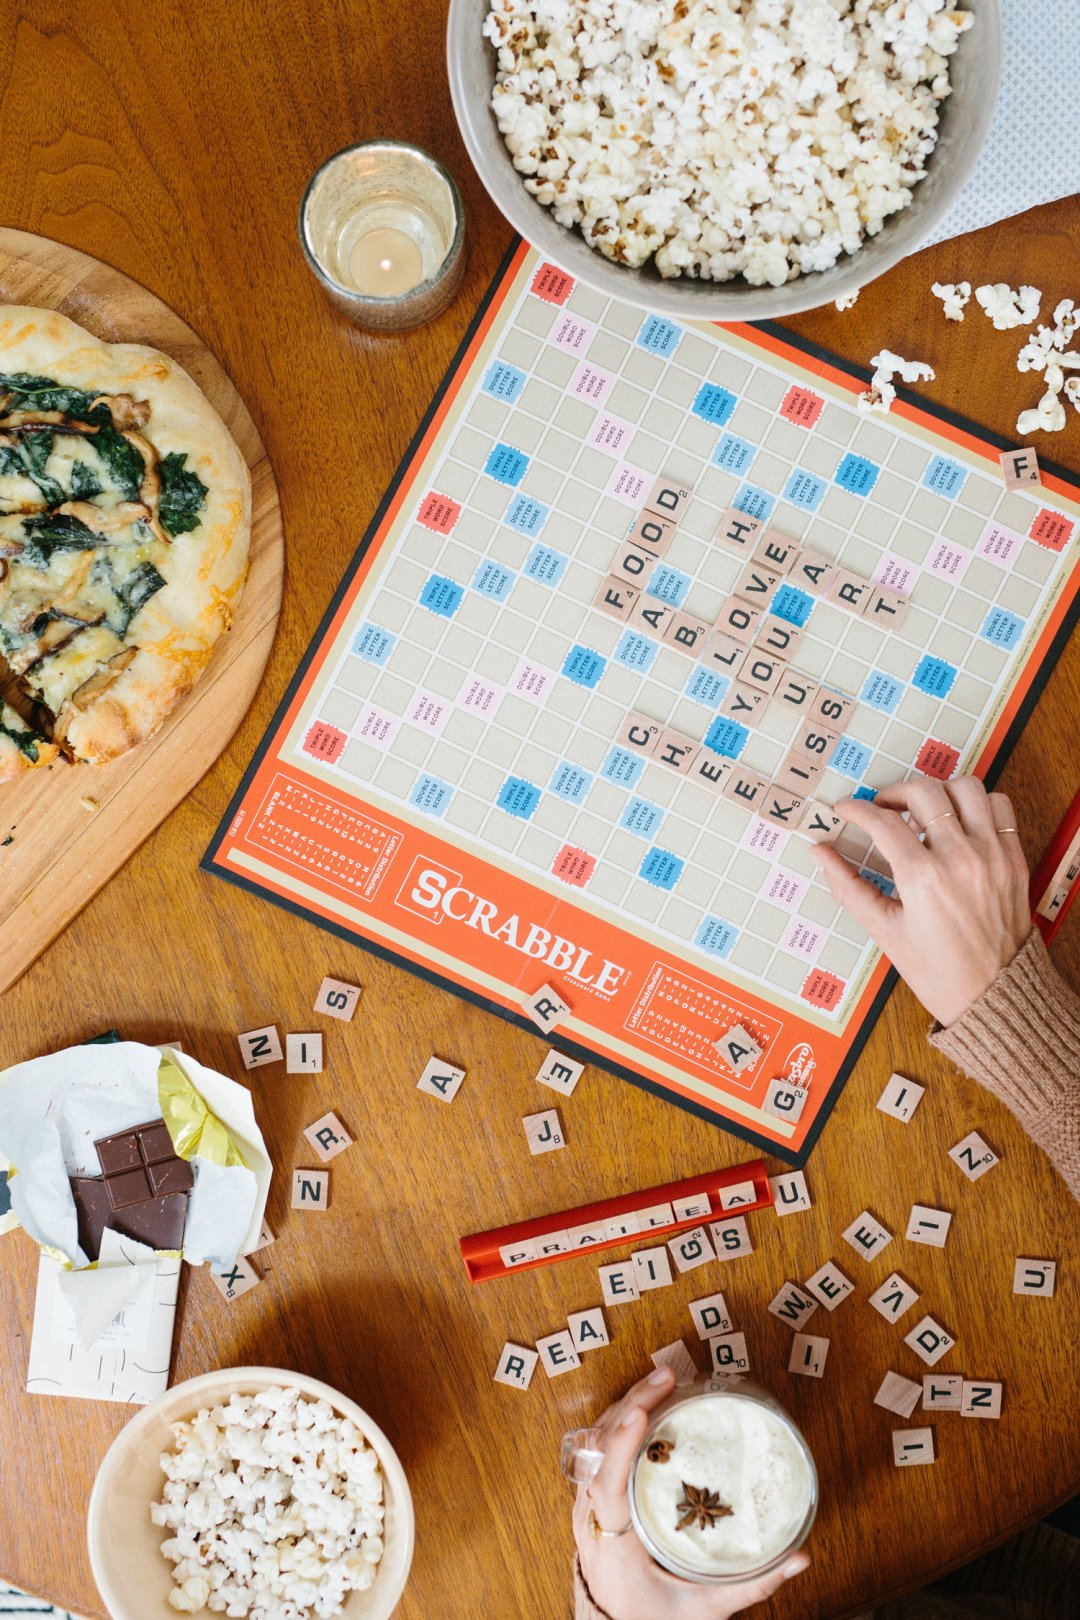 Scrabble game board and letter squares surrounded by bowls of popcorn on a wood coffee table